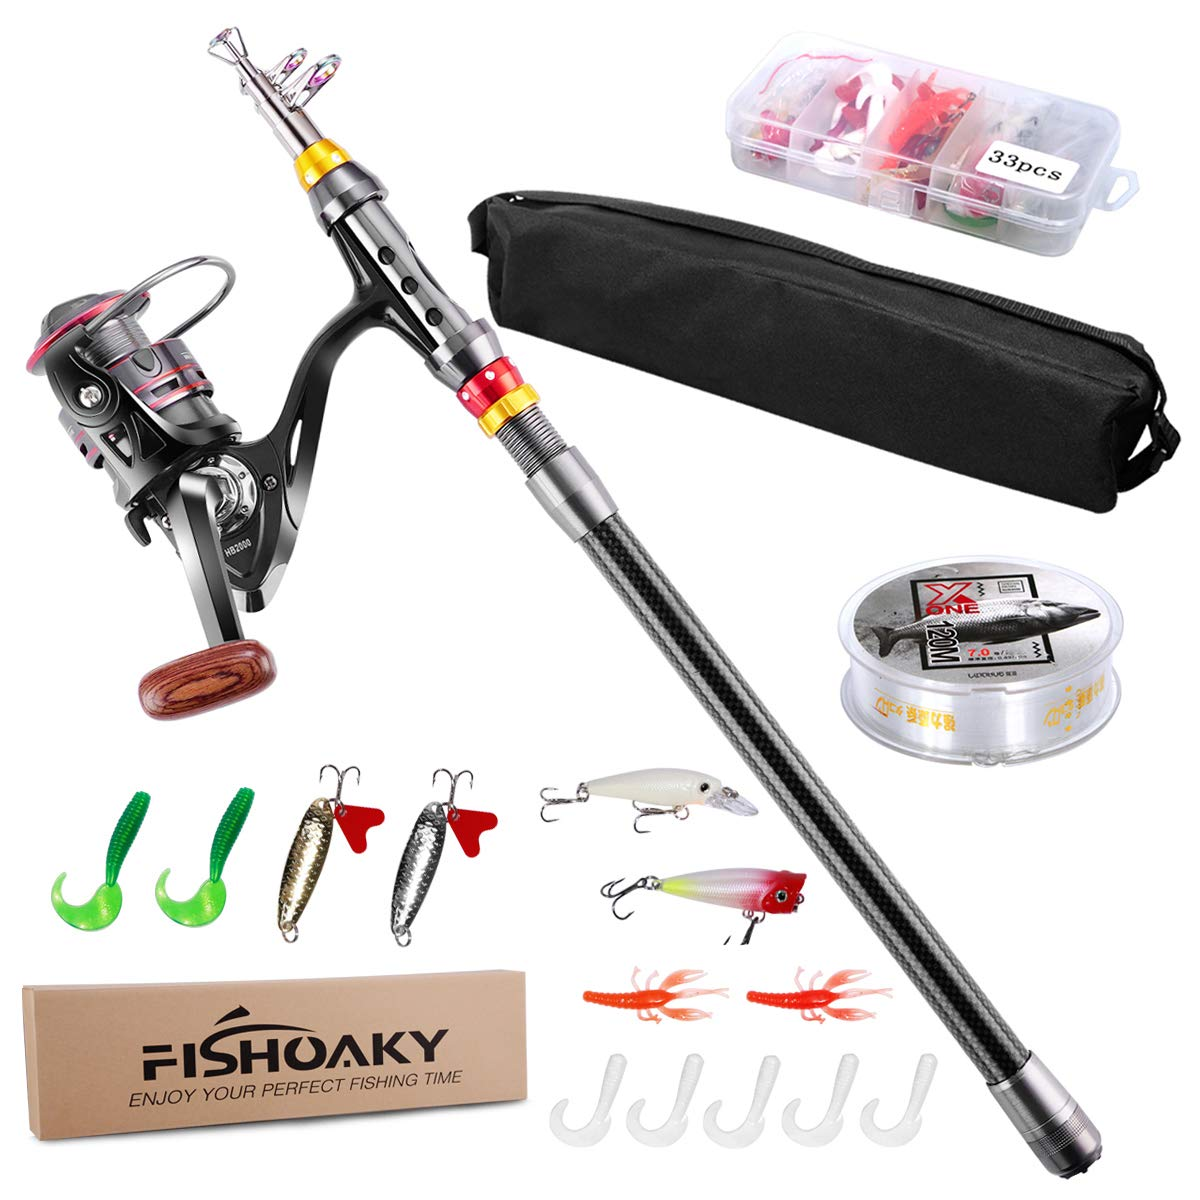 Telescopic Fishing Rod Set,FishOaky Spinning Fishing Gear Organizer Pole Sets with Full Kits Lure Case and Carry Bag  for Saltwater &Freshwater Kids&Adult by FishOaky